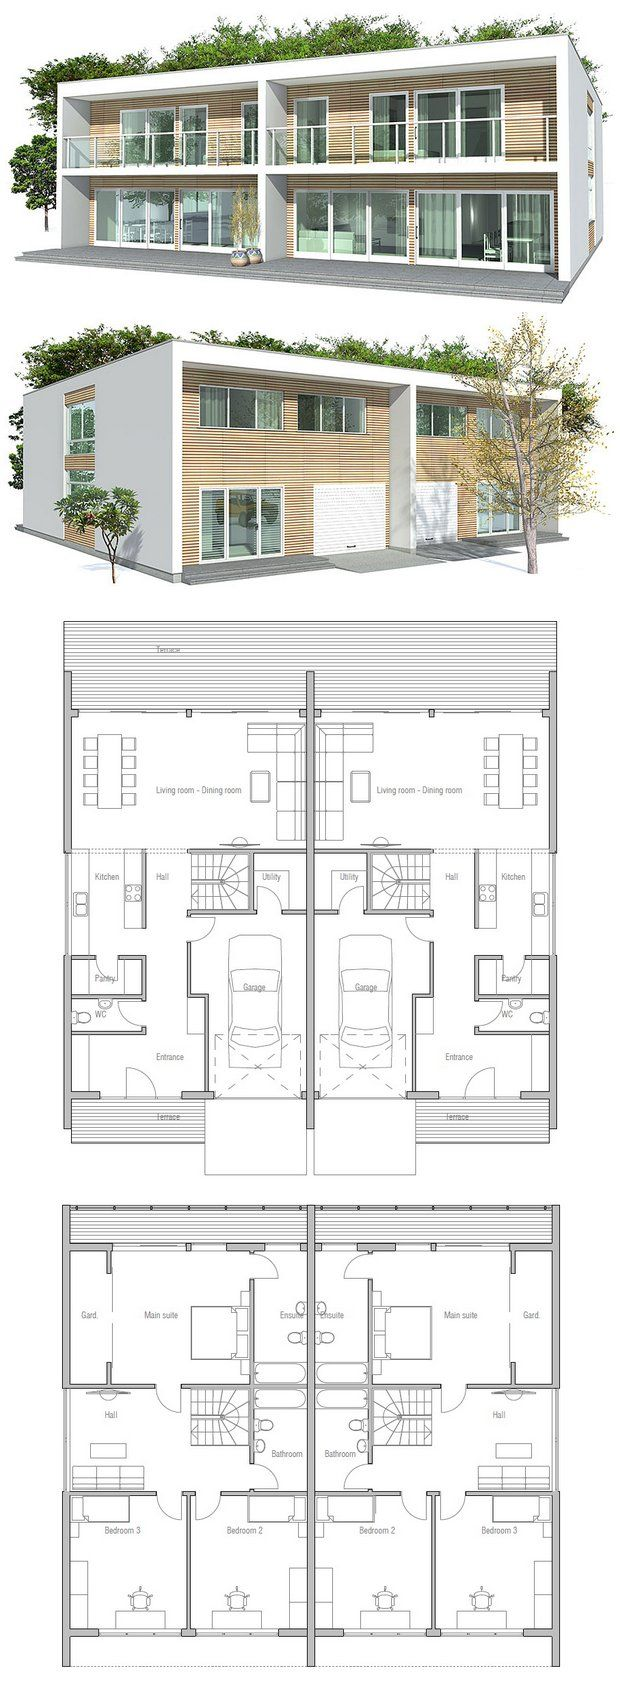 best 25 duplex house plans ideas on pinterest duplex house duplex house a house divided into two apartments with a separate entrance for each